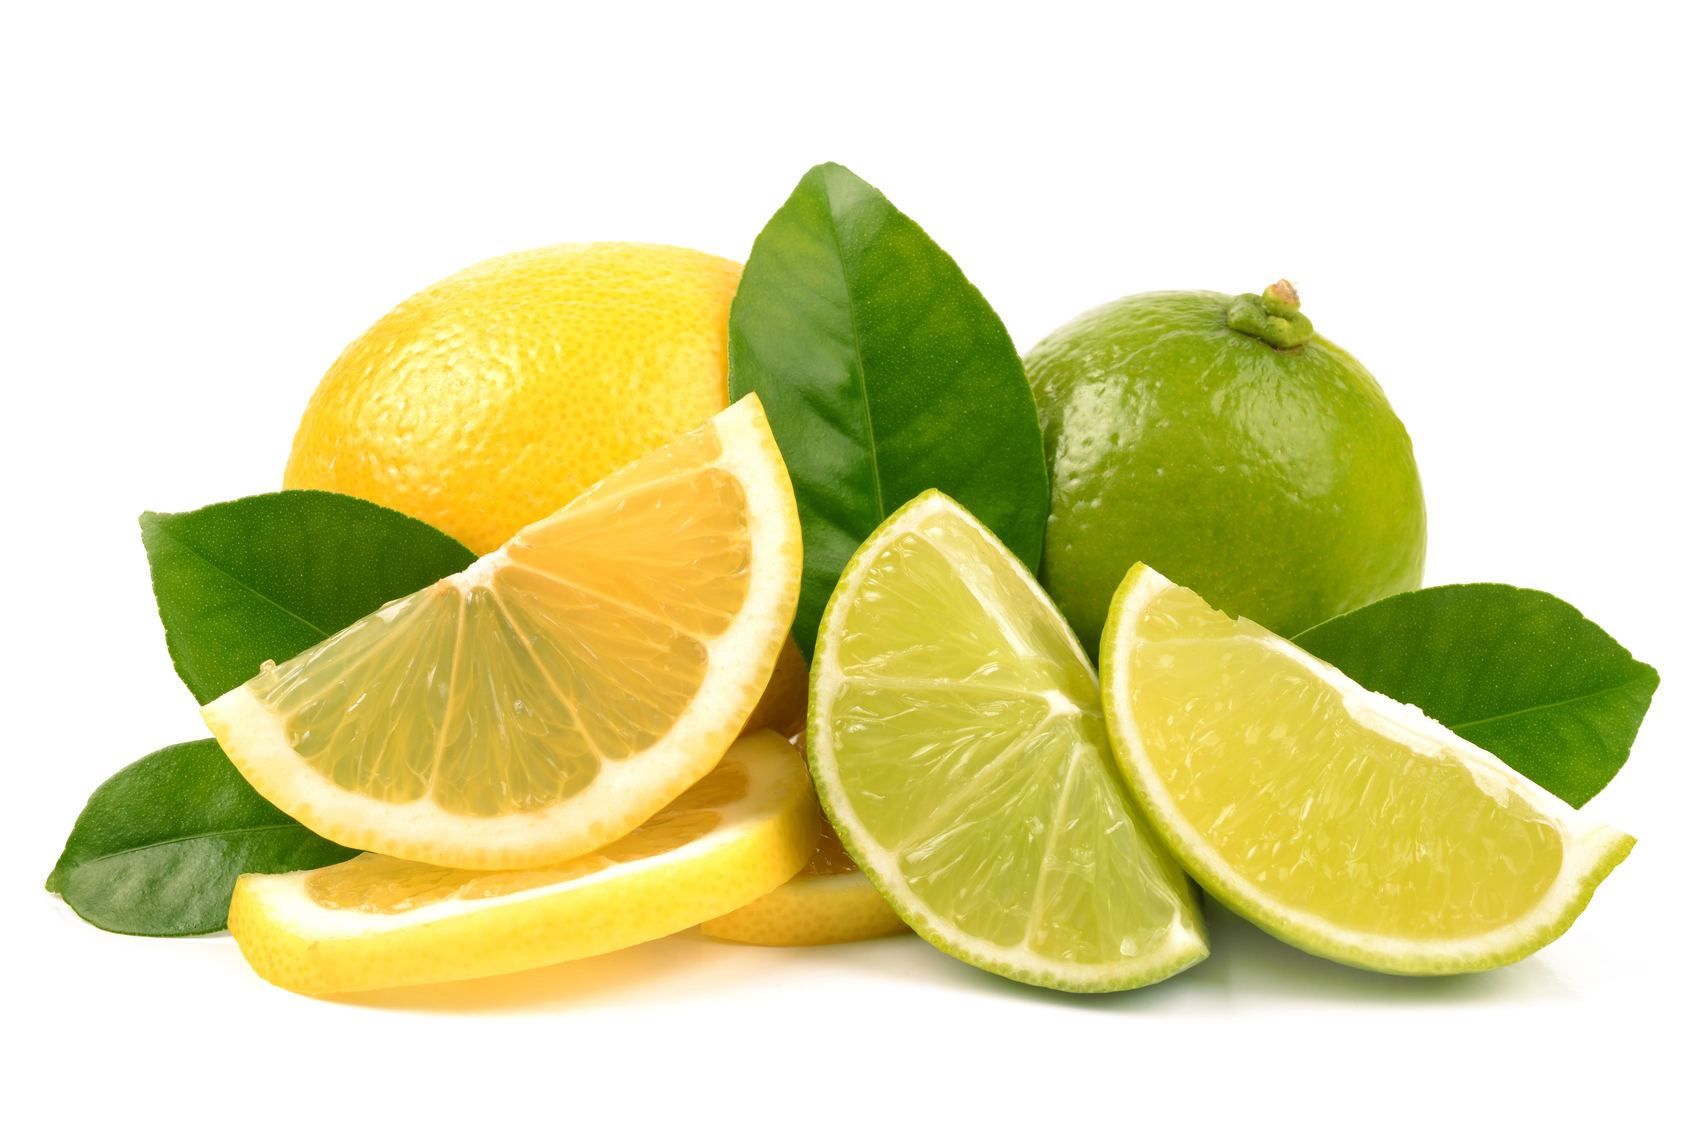 Top 10 Health Benefits of Lemons and Limes • Health ...